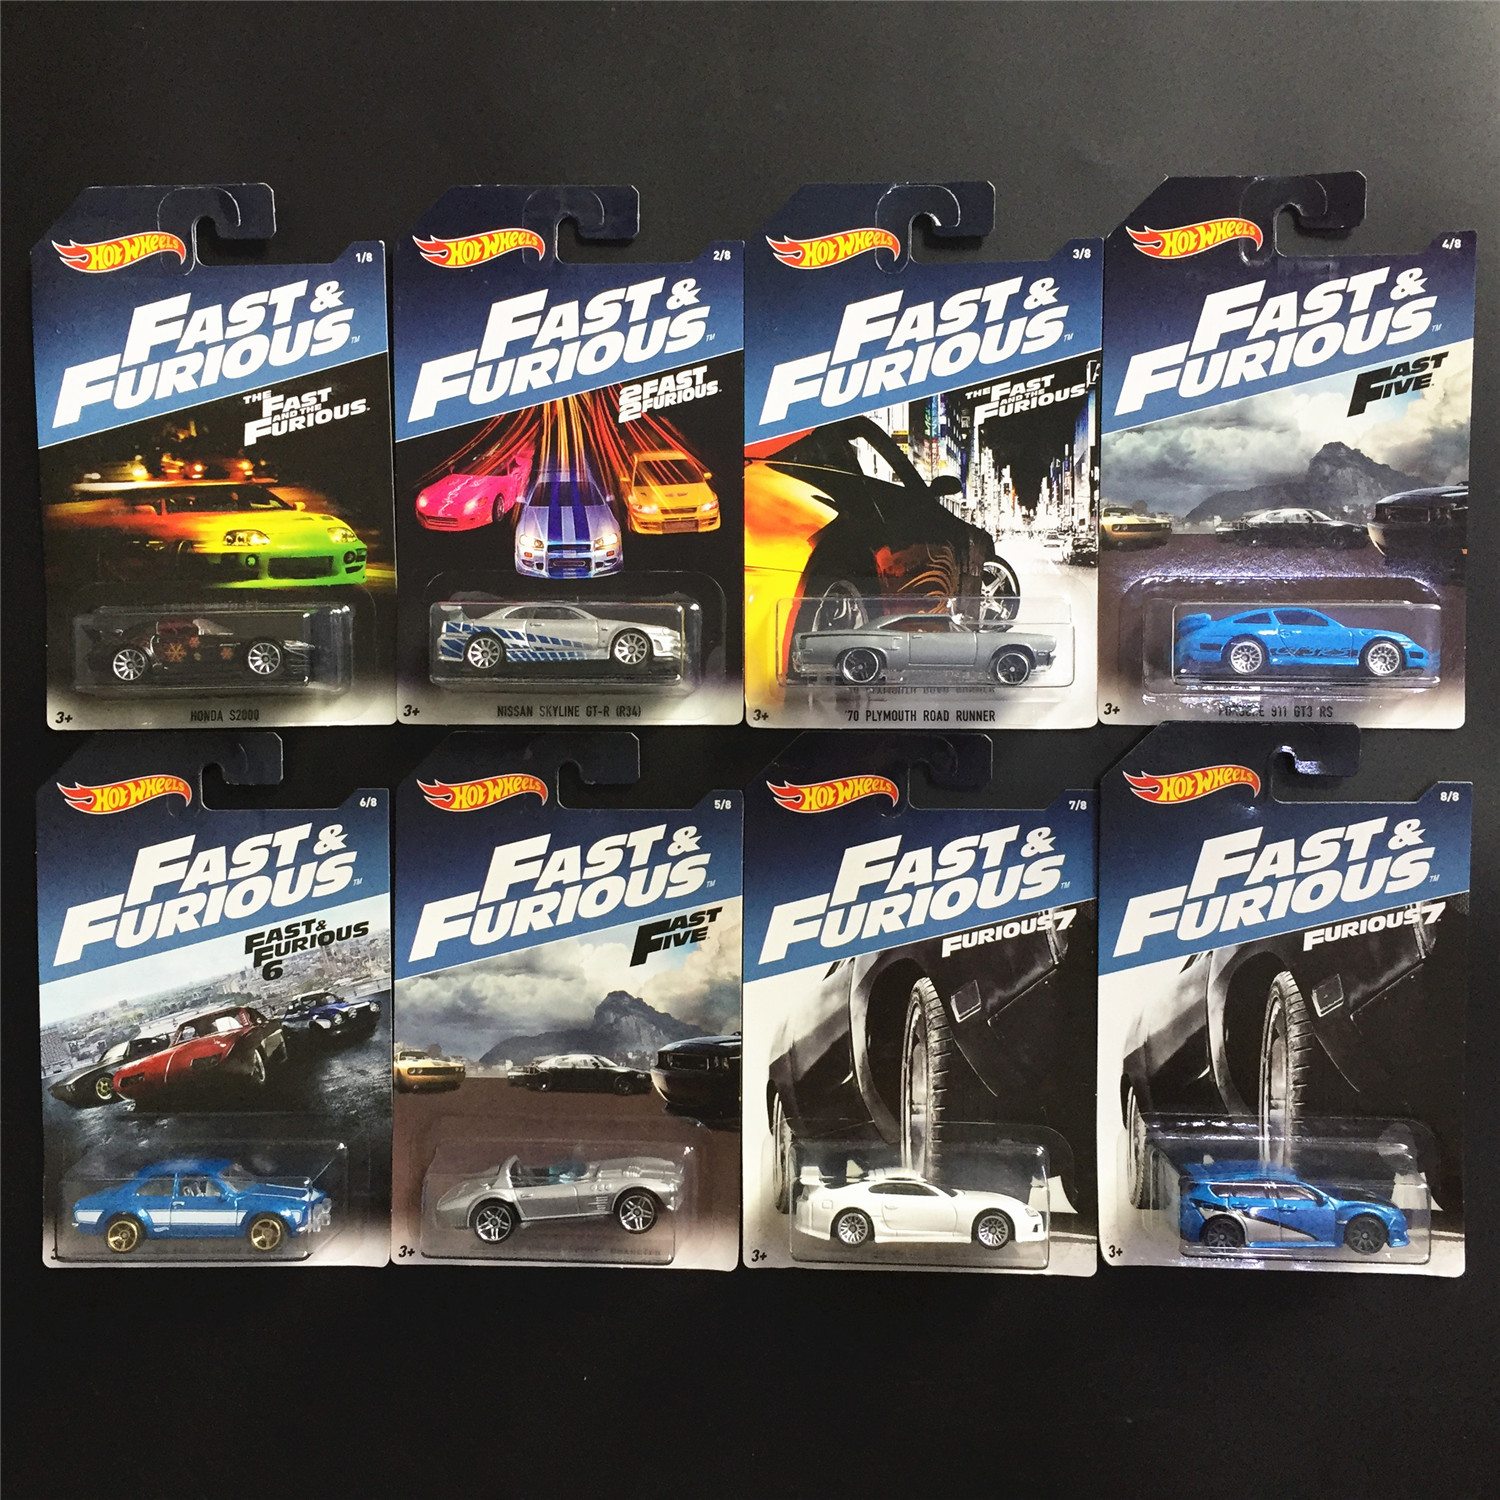 8pcs/set Hot Wheels Fast and Furious Diecast Cars Alloy Model Sport Car Hotwheels Collection Toys for Boy mercedes benz sls 1 18 maisto amg gt car model alloy diecast boy gift collection sports car fast